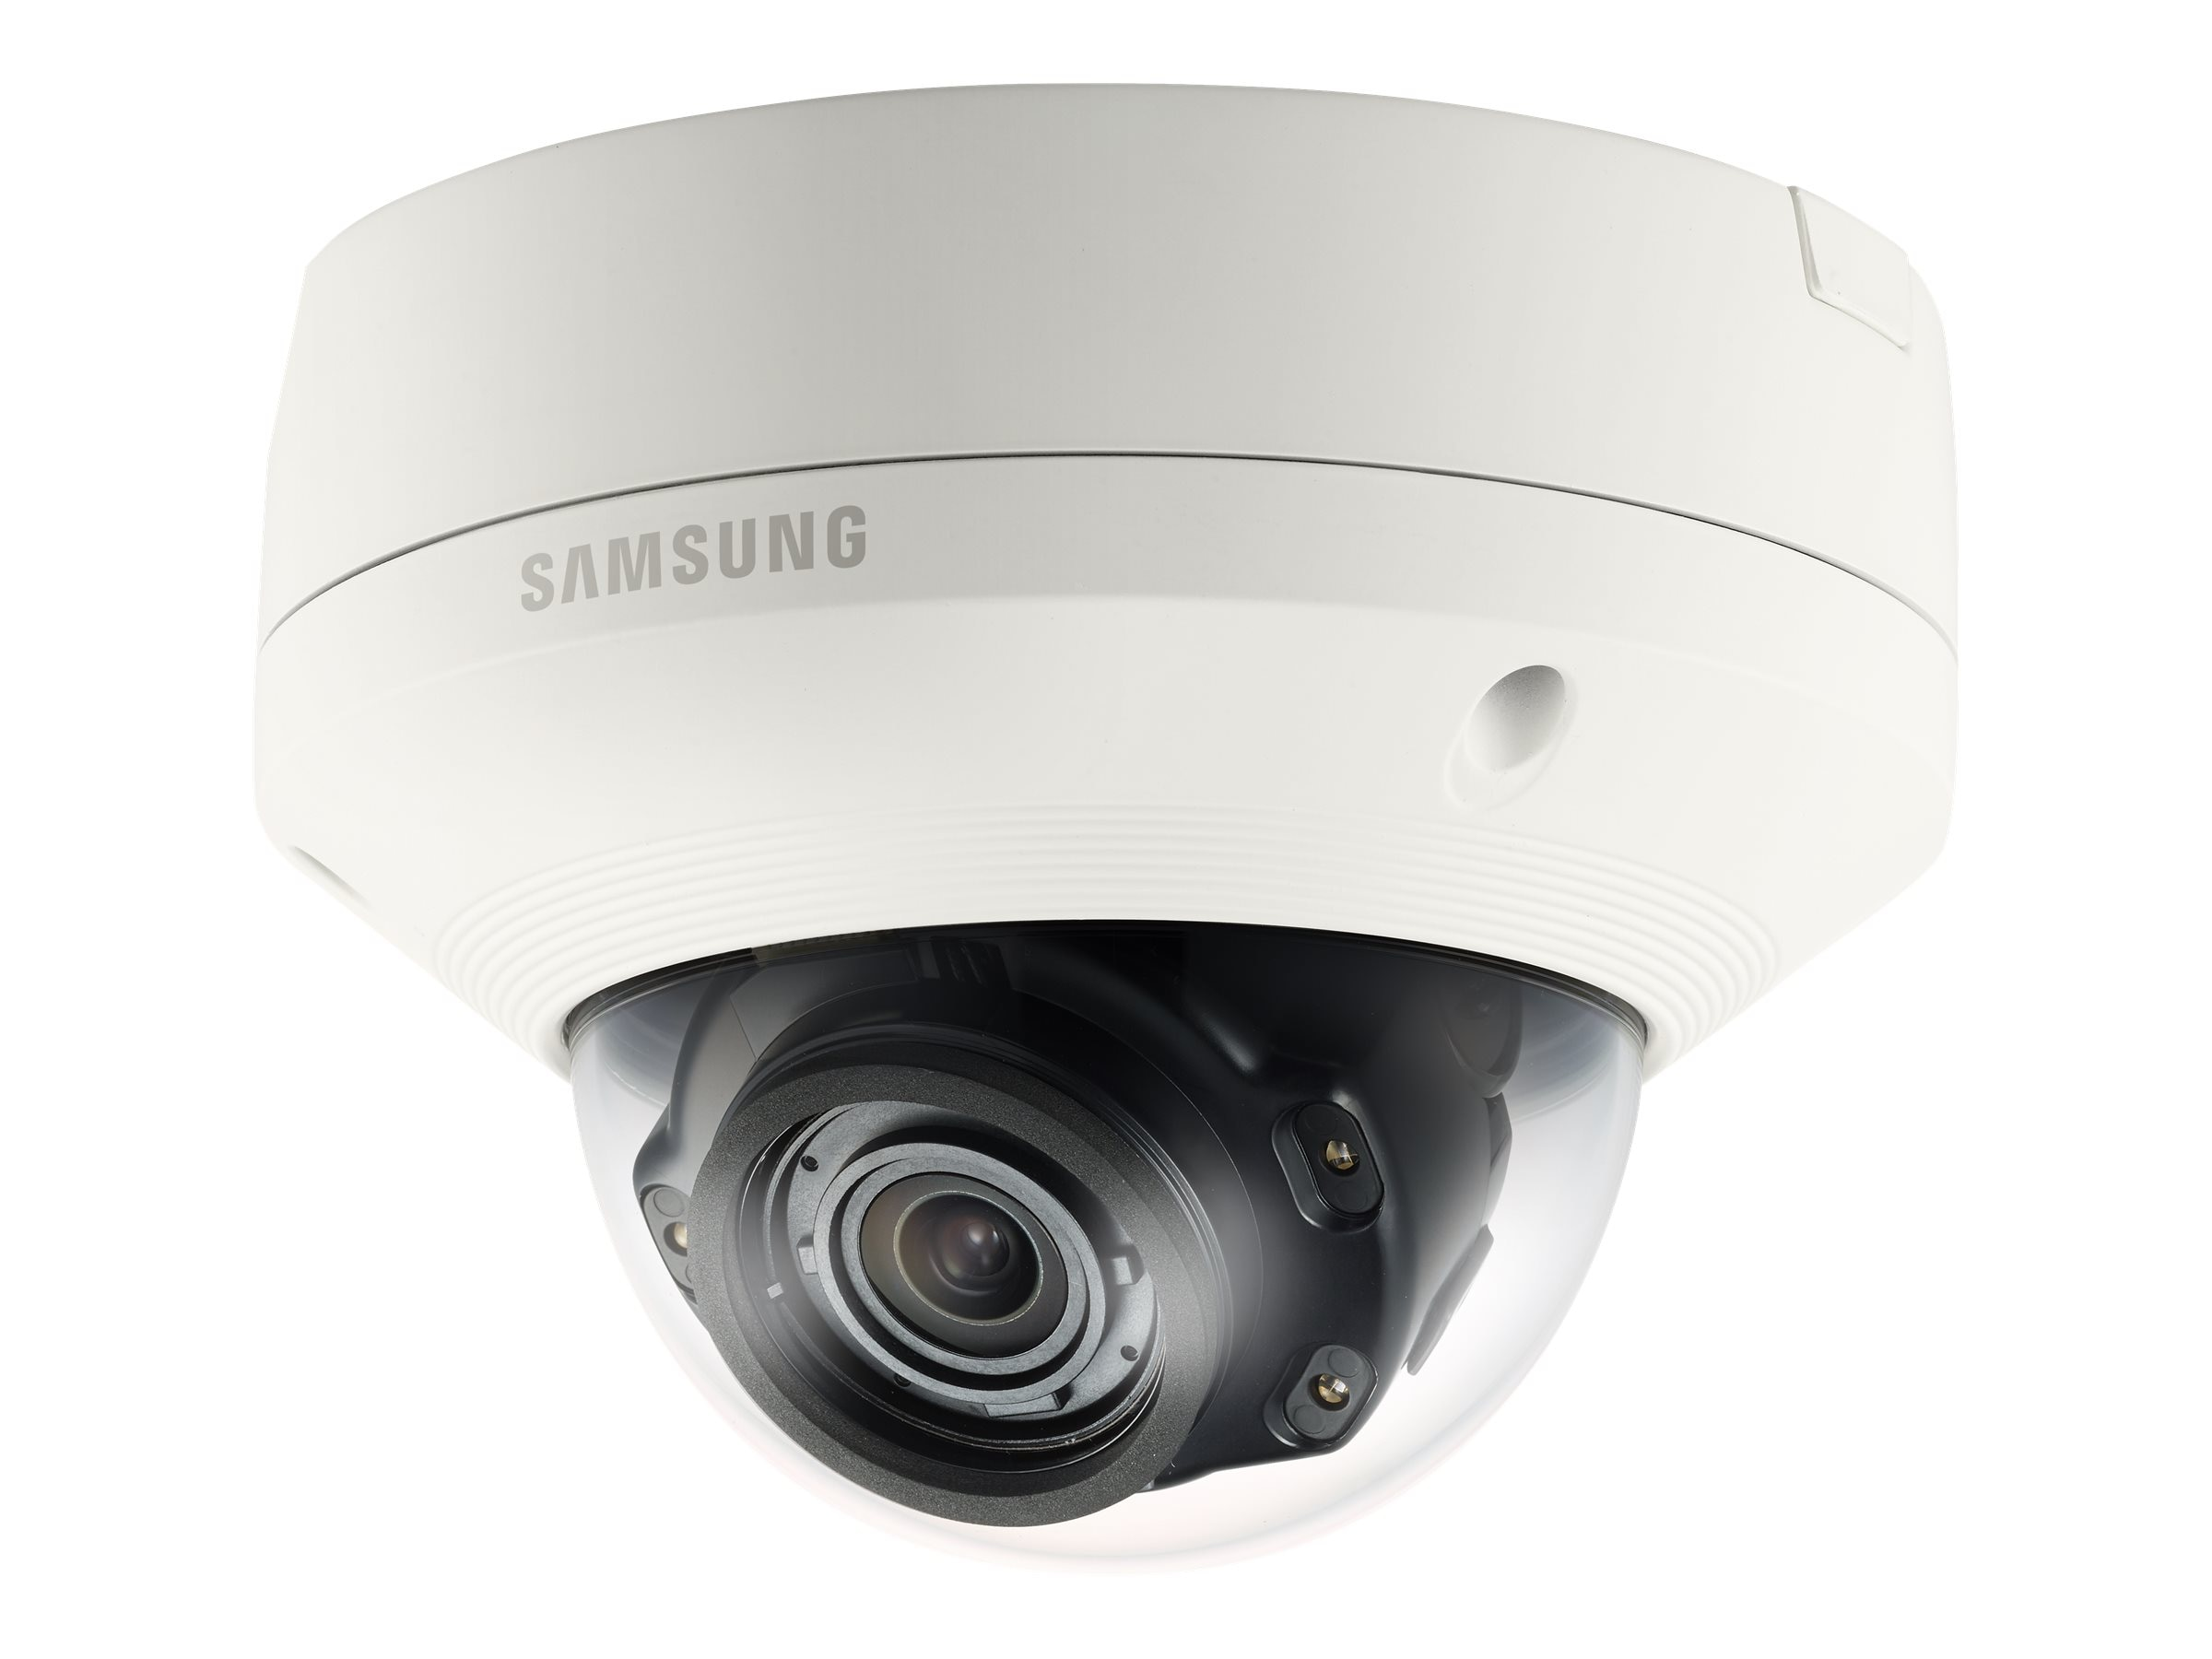 Samsung 5MP Vandal-Resistant Network IR Dome Camera, White, SNV-8081R, 31631420, Cameras - Security